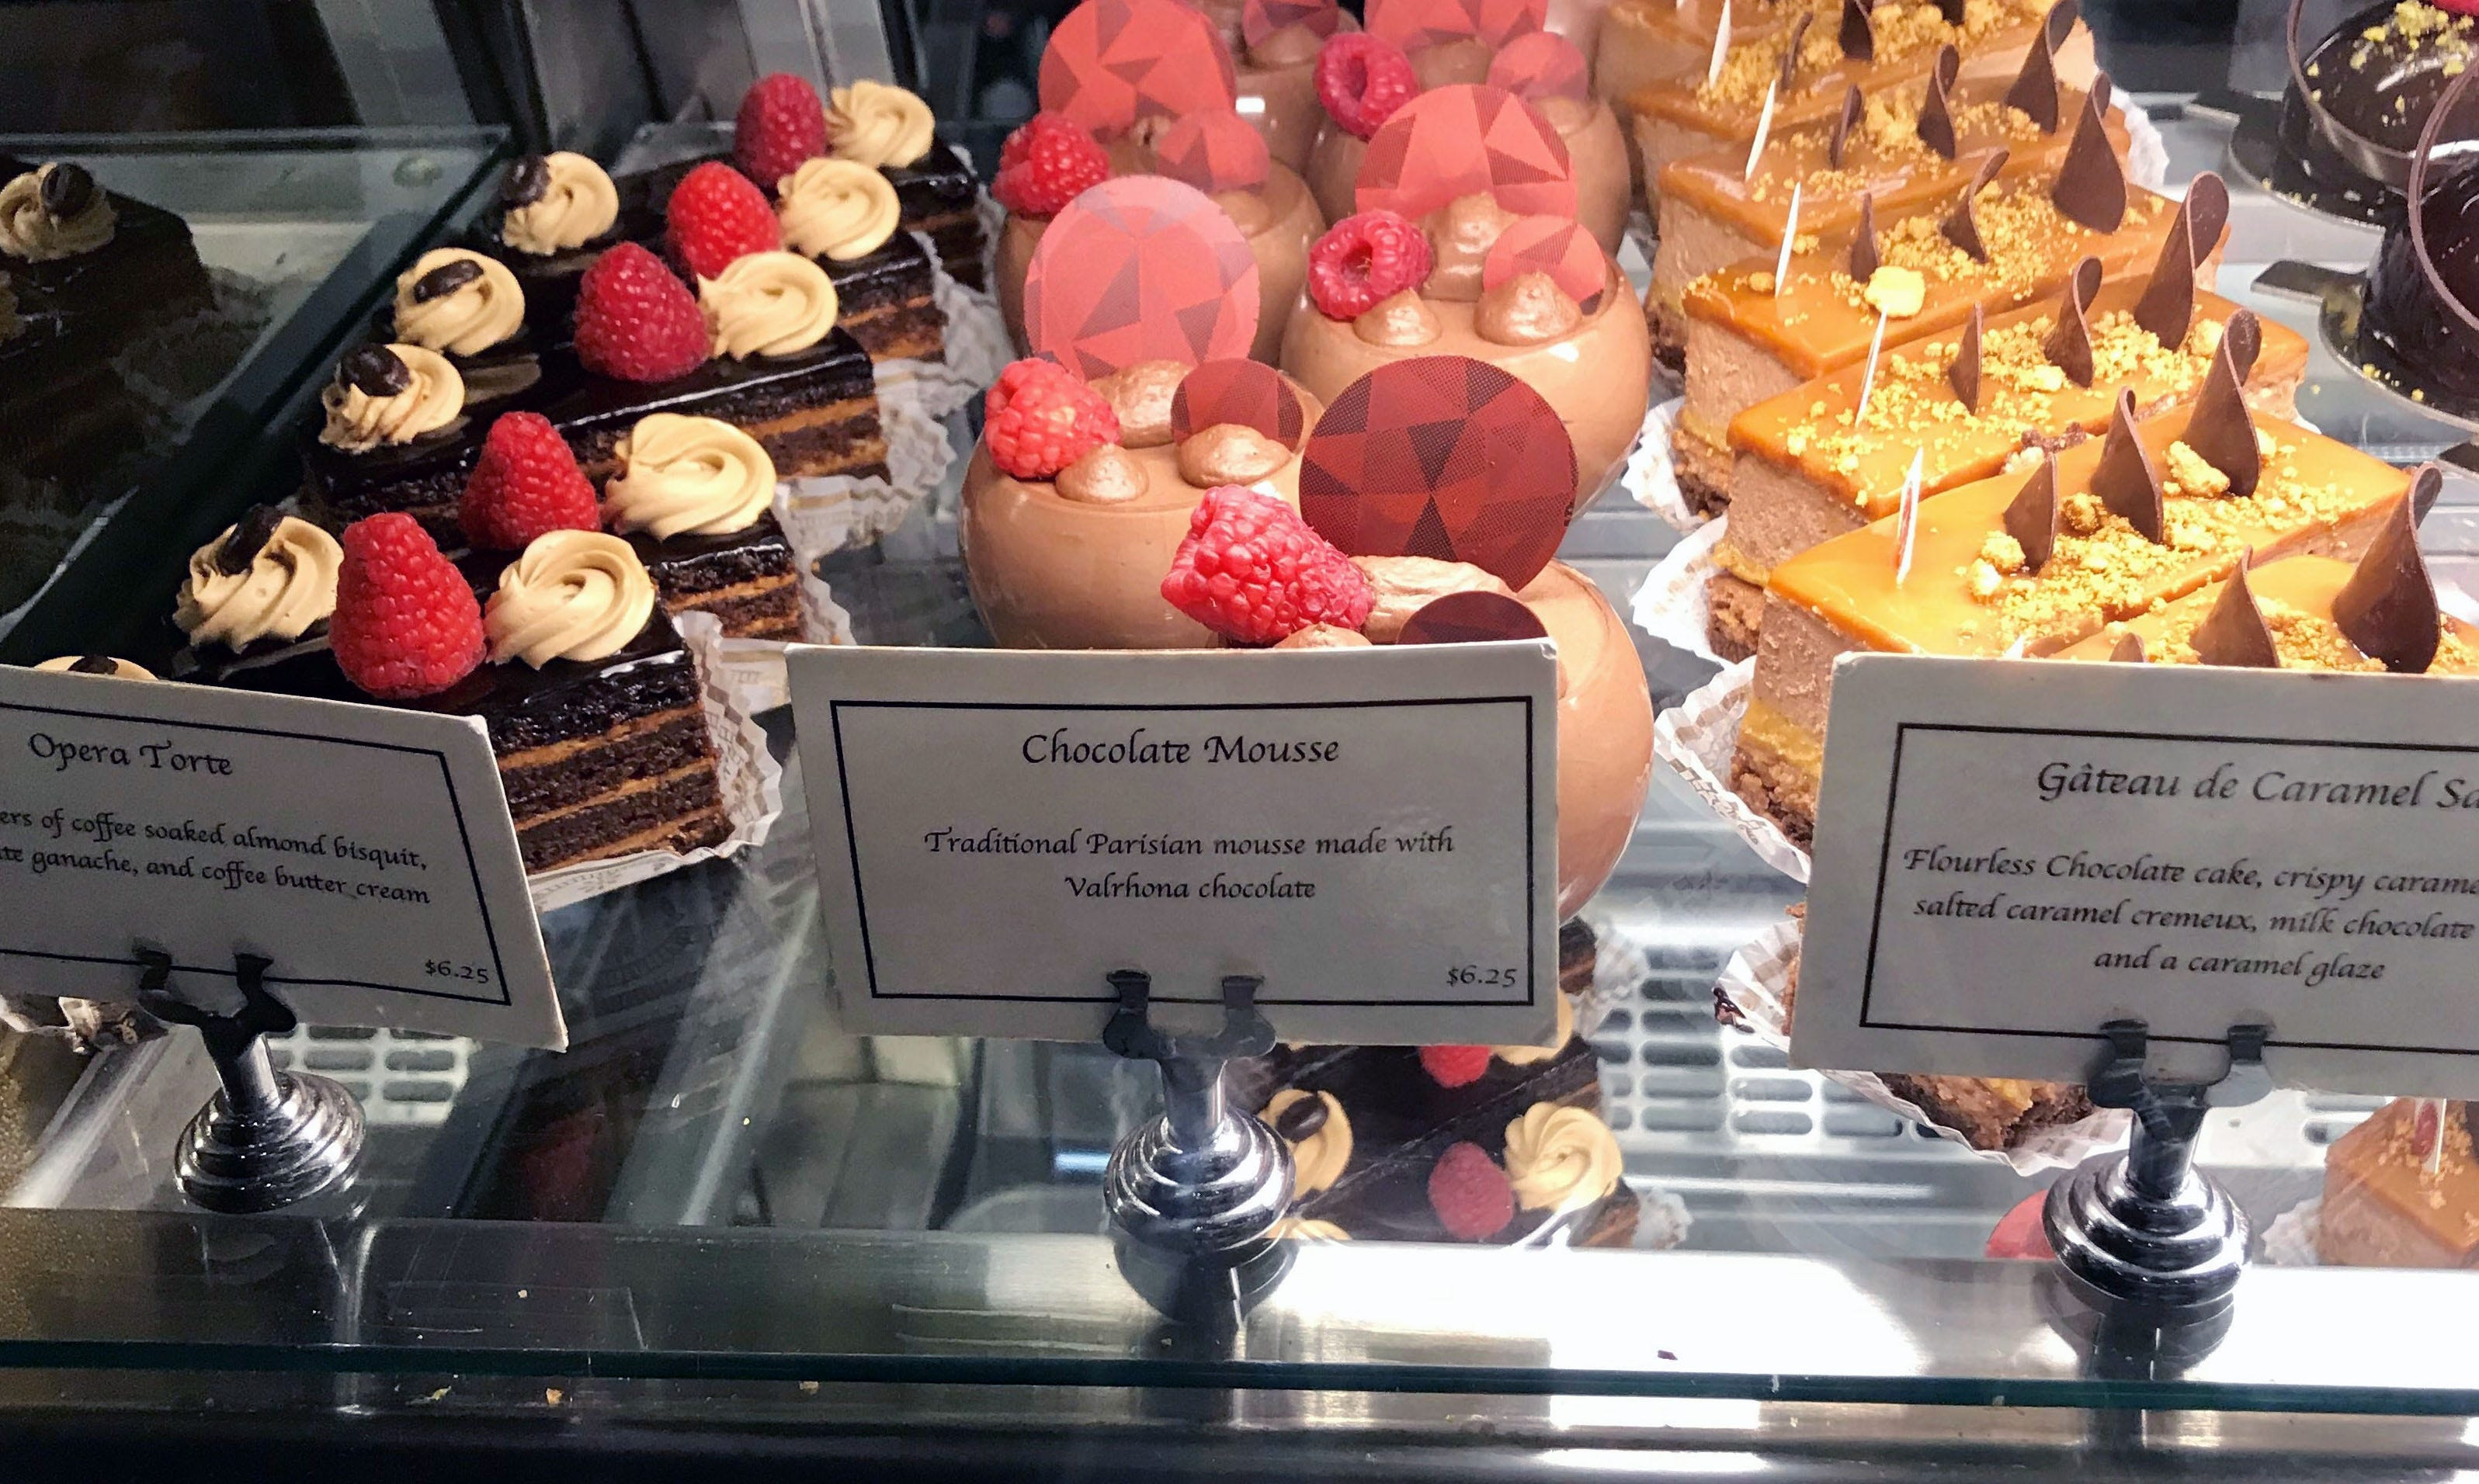 Customers can browse the pastry case at Le Reve Patisserie & Café in Wauwatosa for dessert.